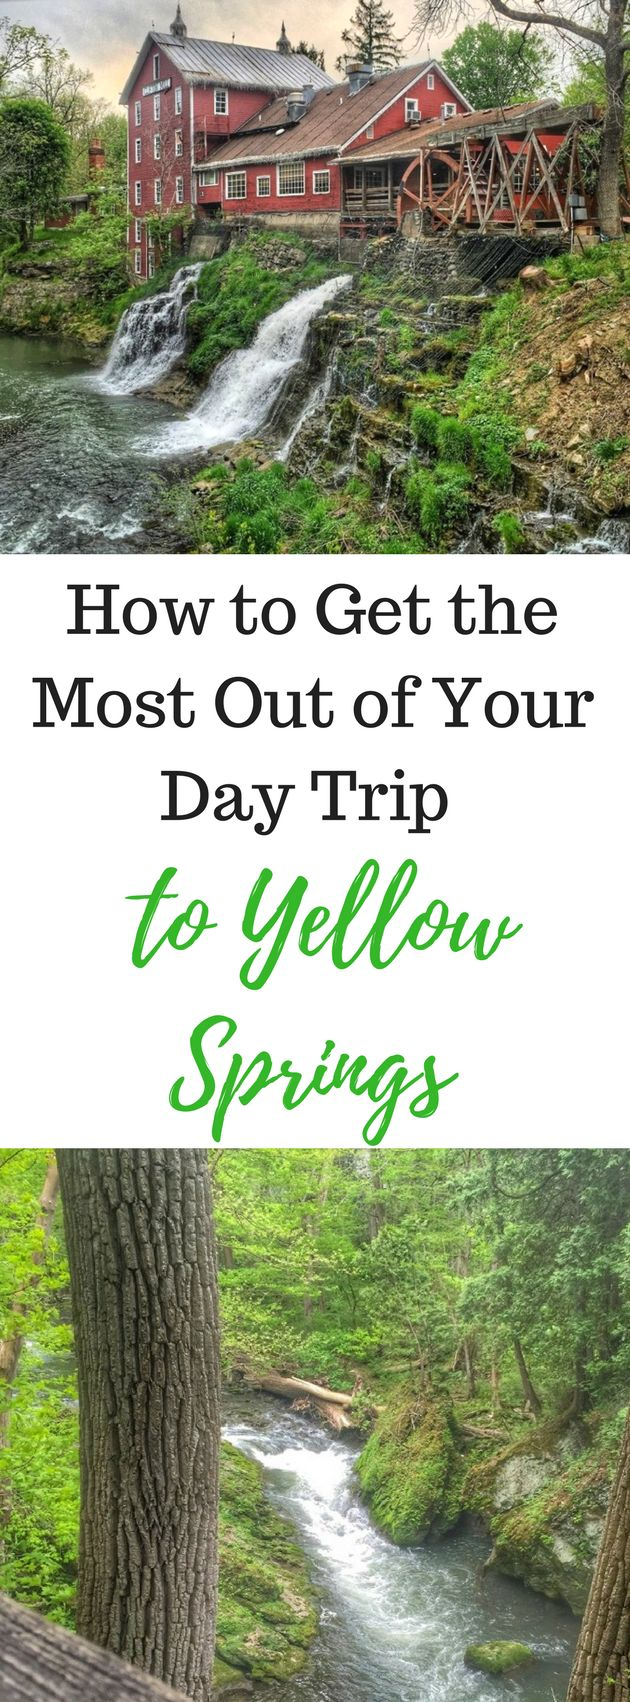 Find out where to go, what to do, and where to eat during your visit to Yellow Springs, Ohio.